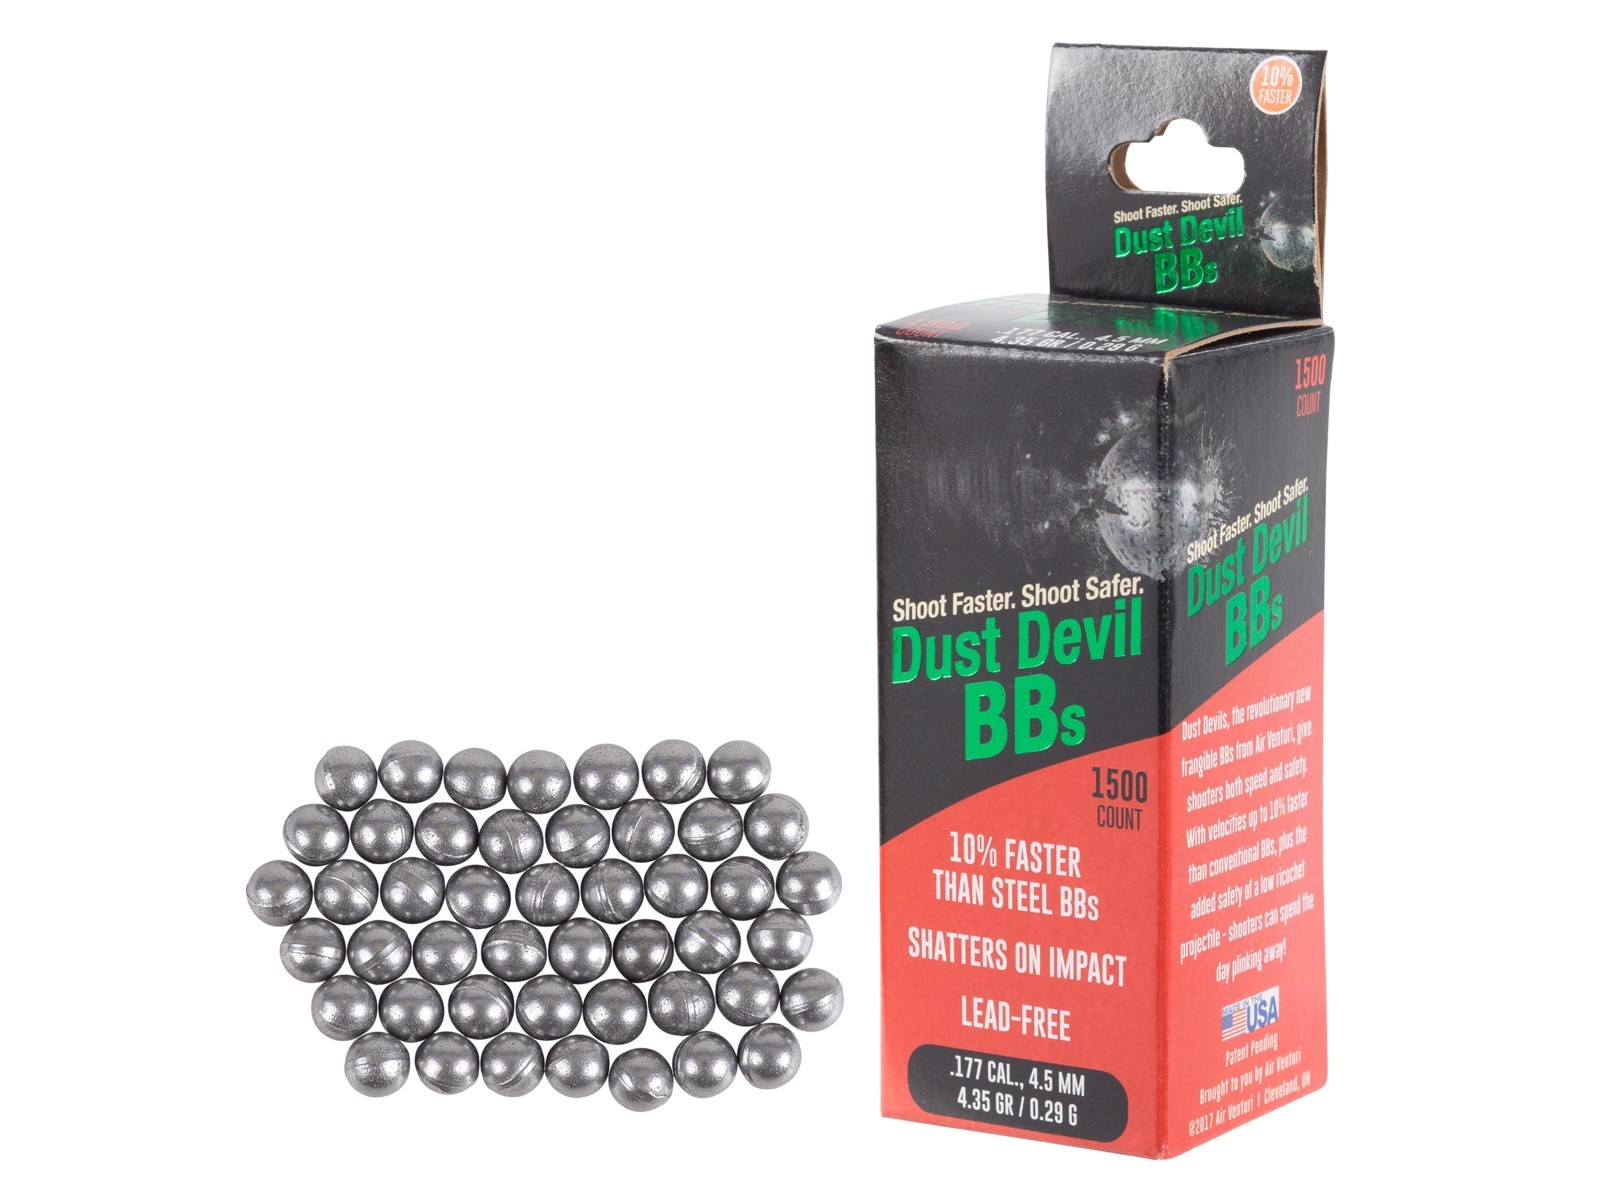 Air Venturi Dust Devil Mk2 Frangible BBs - 1,500 ct.